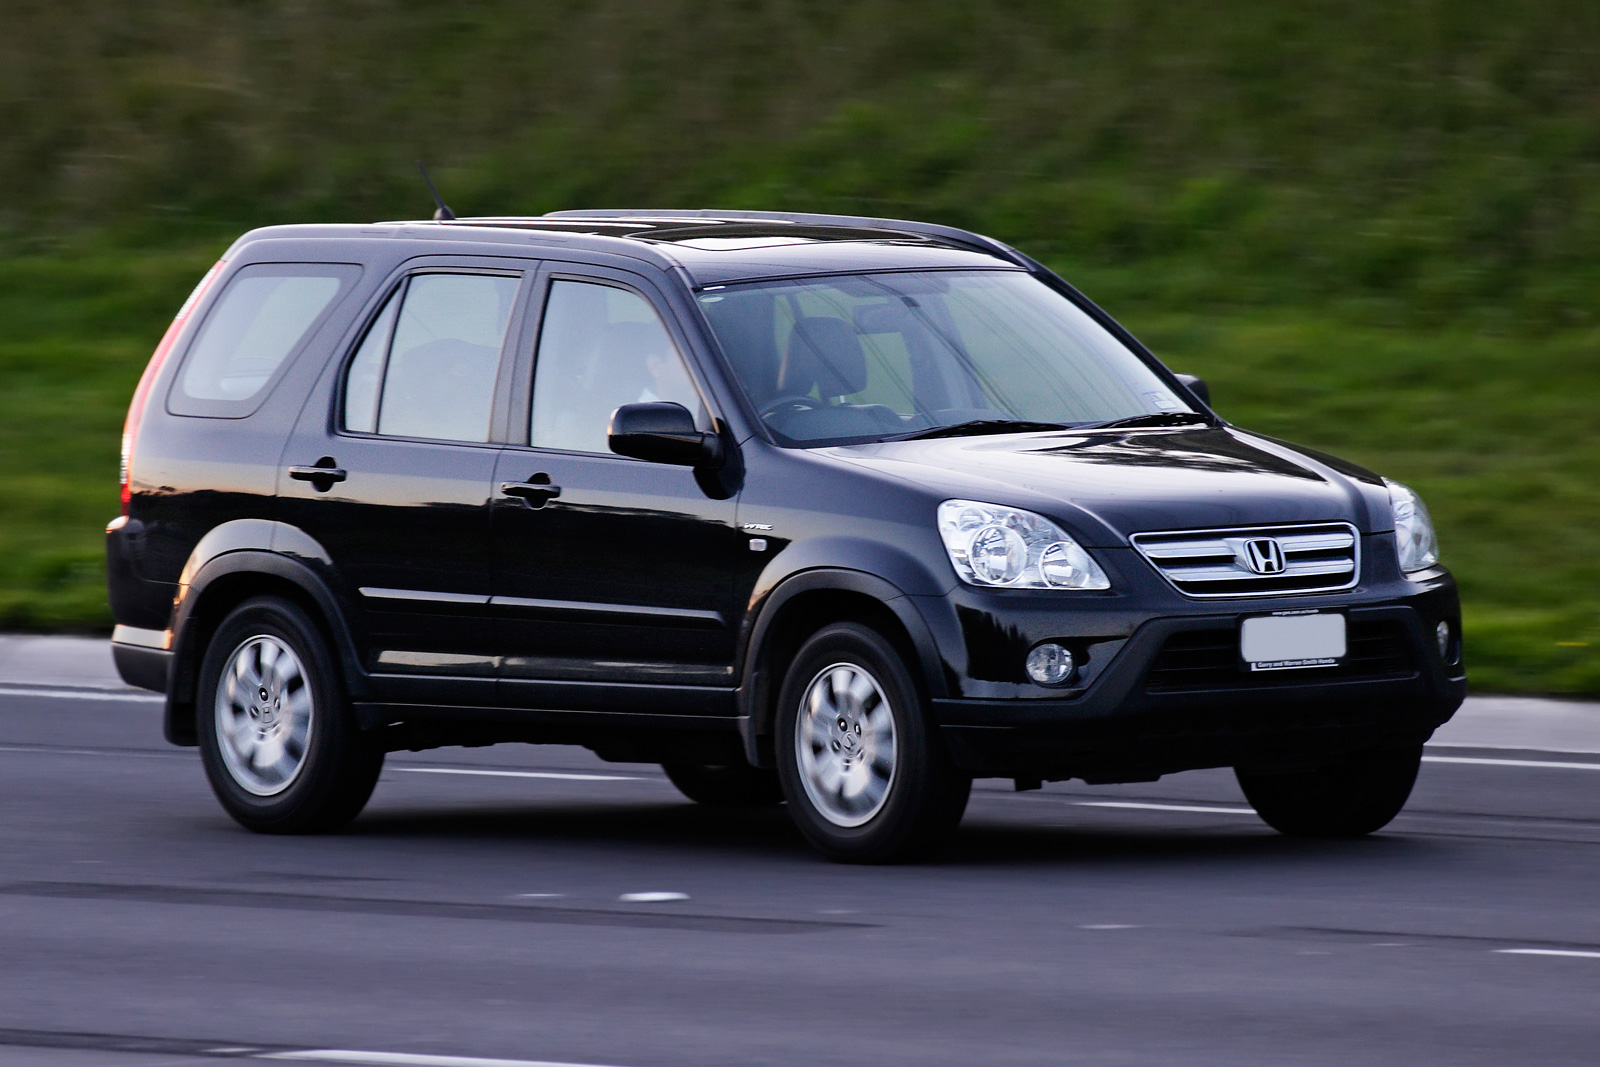 Honda Crv 2005 Review Amazing Pictures And Images Look